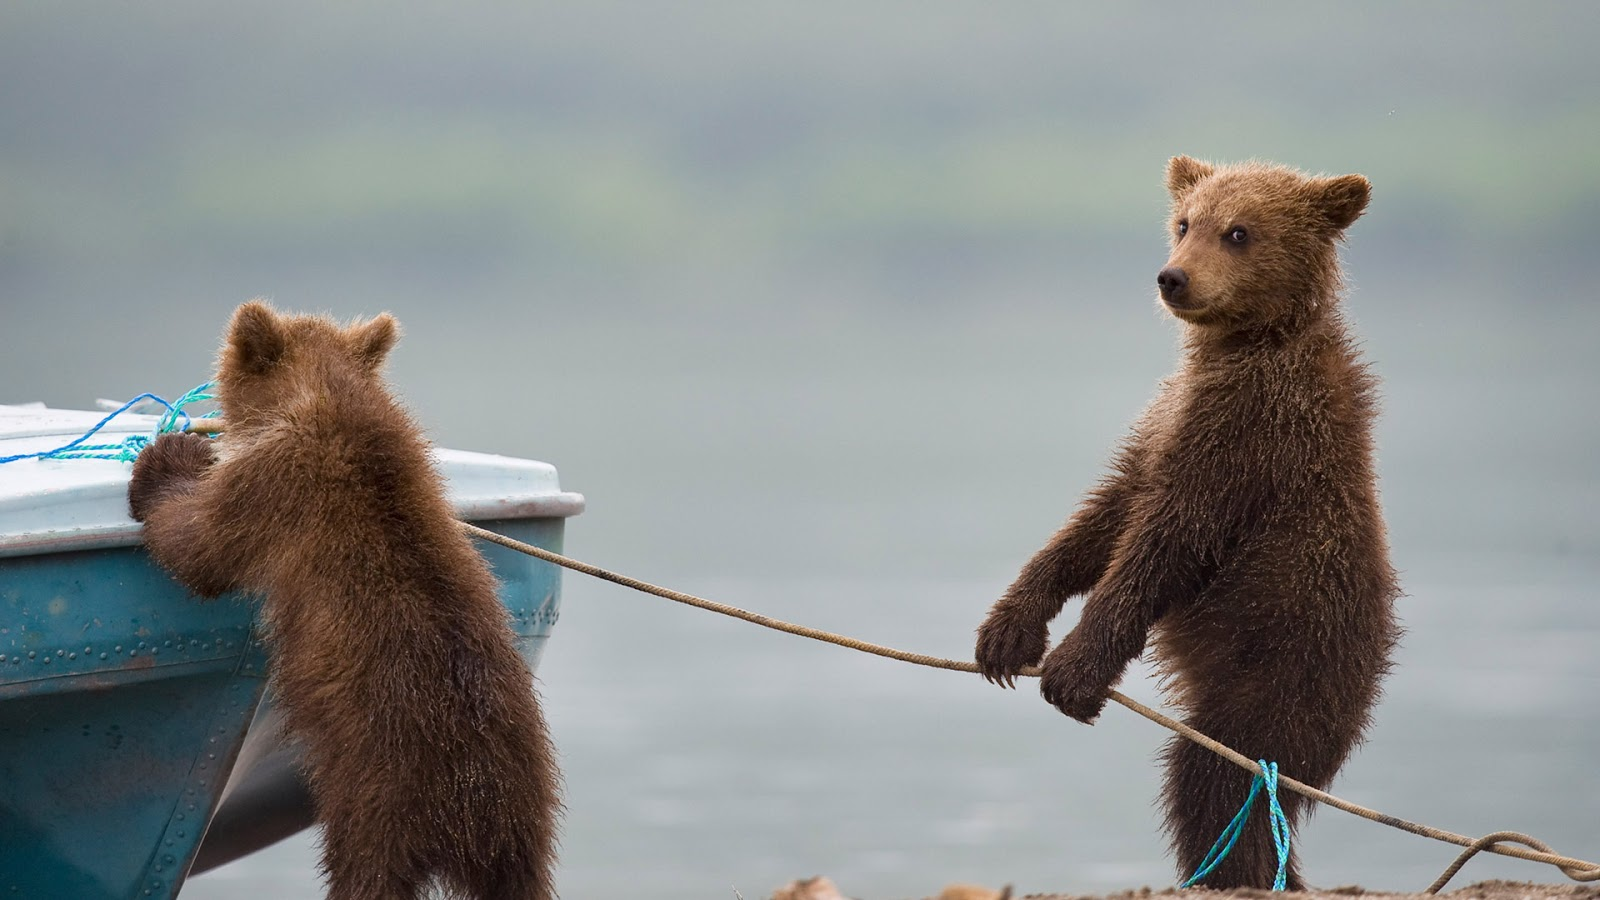 Bear cubs playing by a lake © Sergey Ivanov/Getty